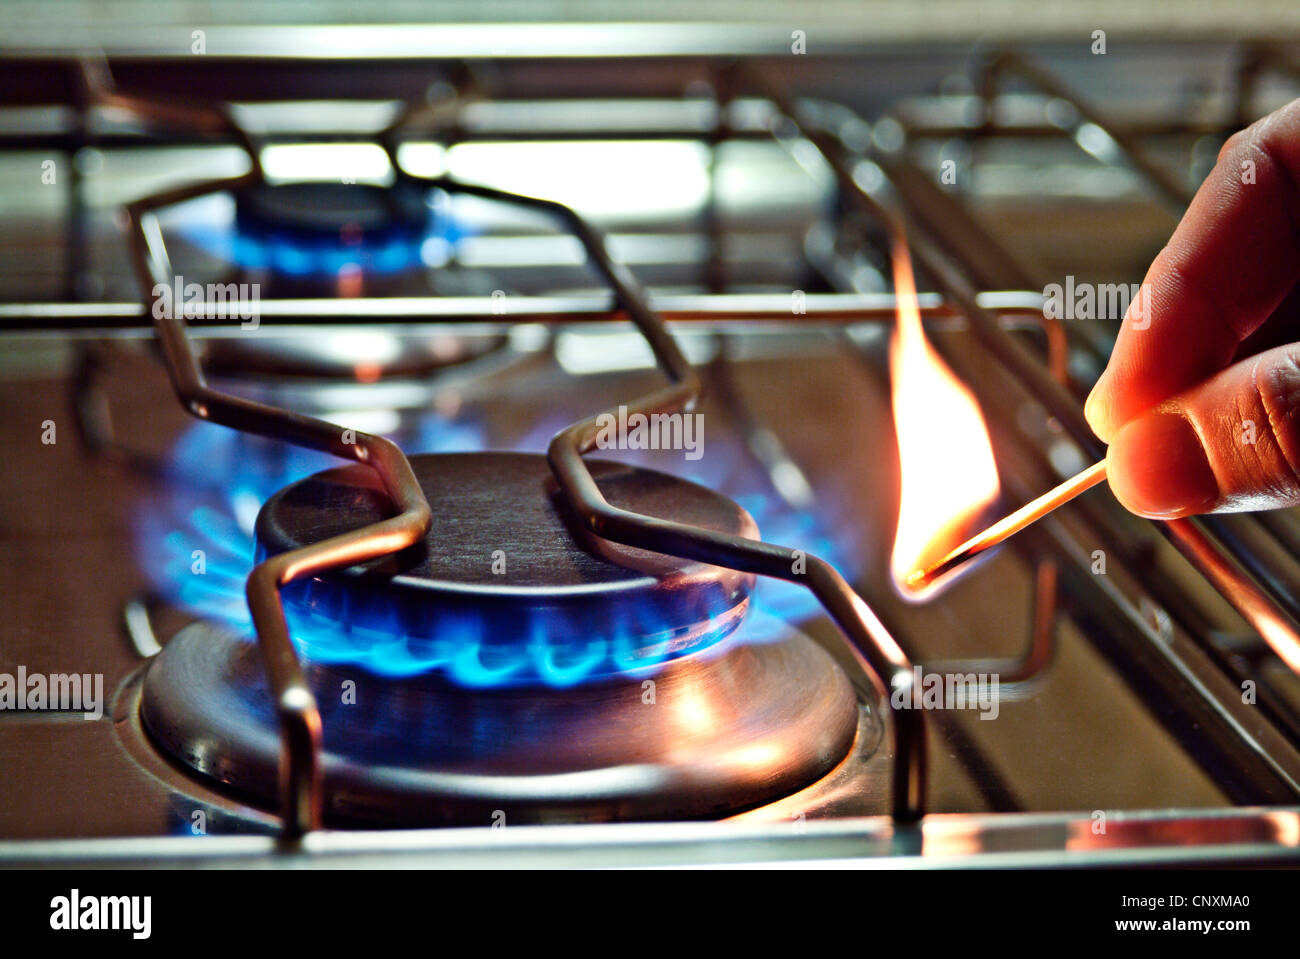 Close up of a burner of a gas stove that is lit with a match. - Stock Image